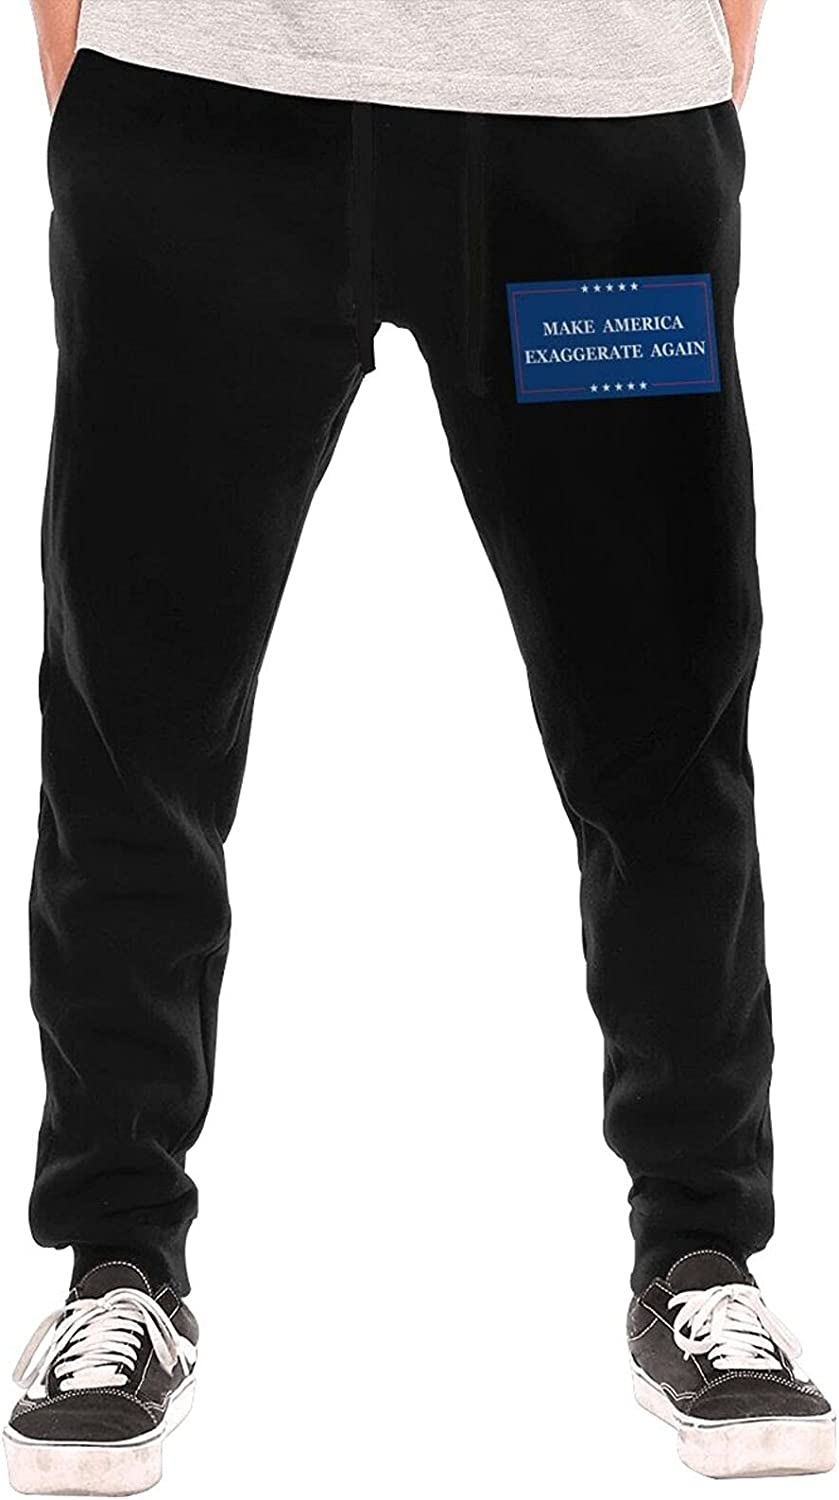 Make America Exaggerate Again Lightw Long Sweatpants Men's In Free Shipping New a popularity